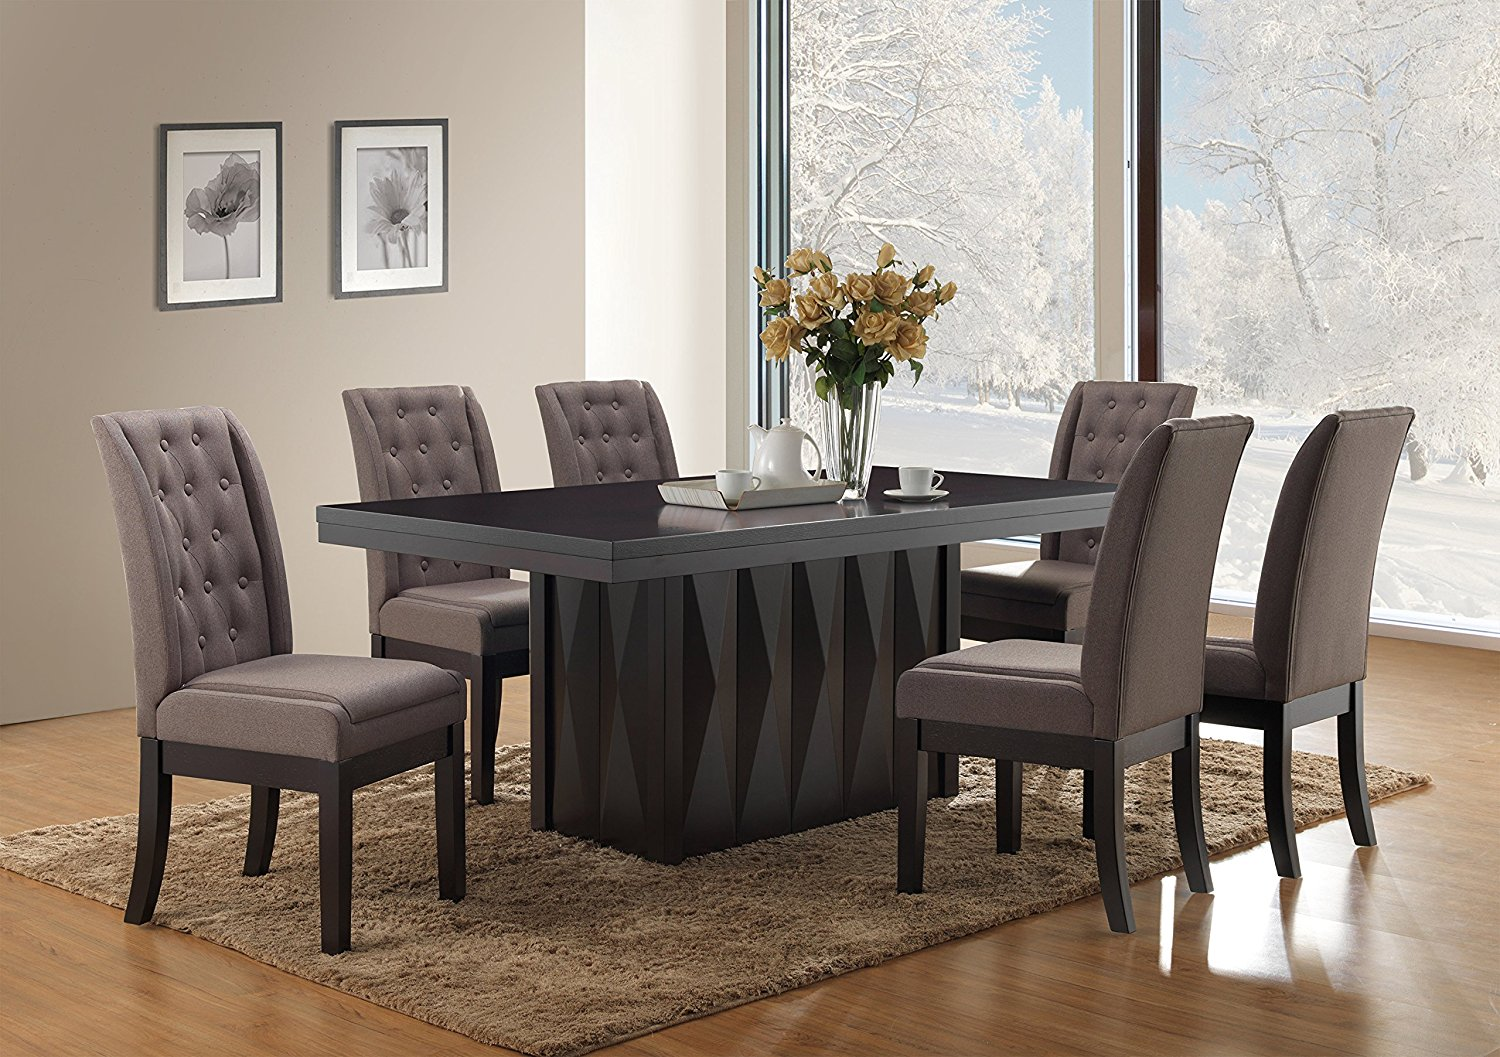 Buy Kings Brand Furniture 7 Piece Rectangular Dinette Dining Room Set Table Amp 6 Chairs Gray In